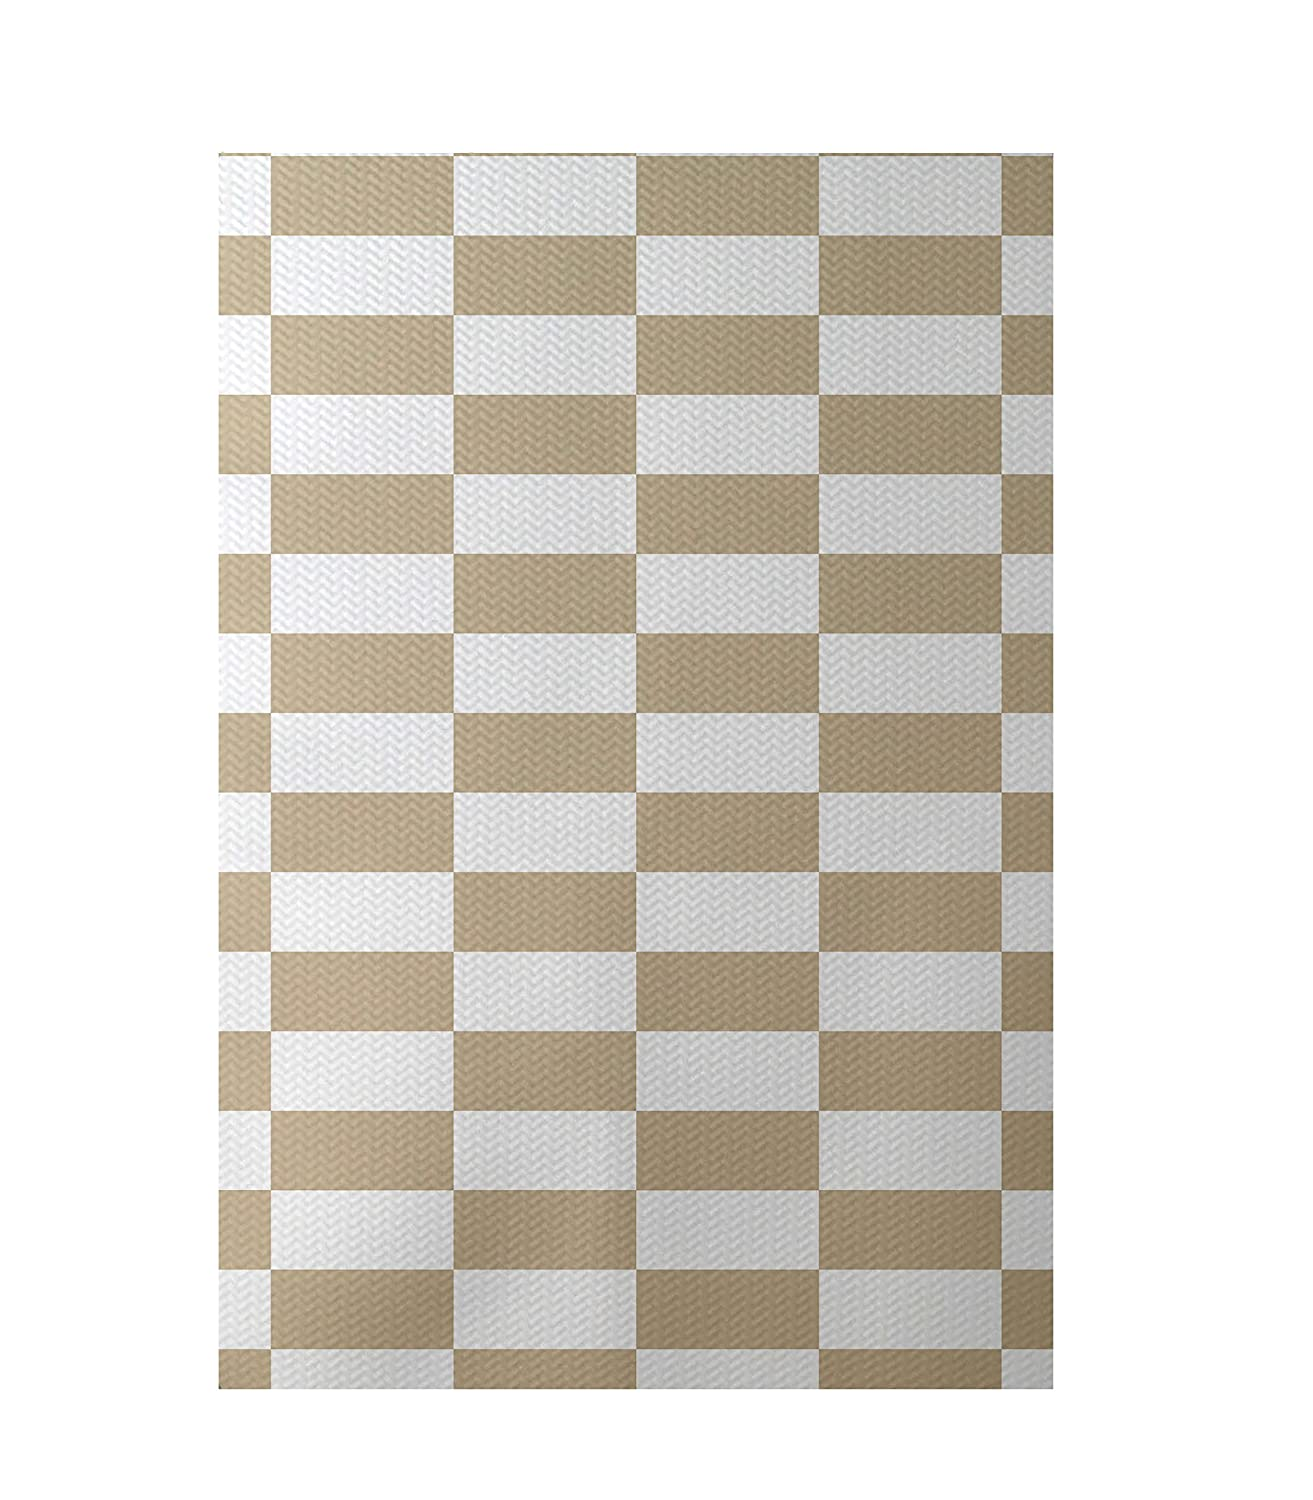 E by design RSN135TA6-23 Stair Stepping Stripes Print Indoor/Outdoor Rug, Khaki